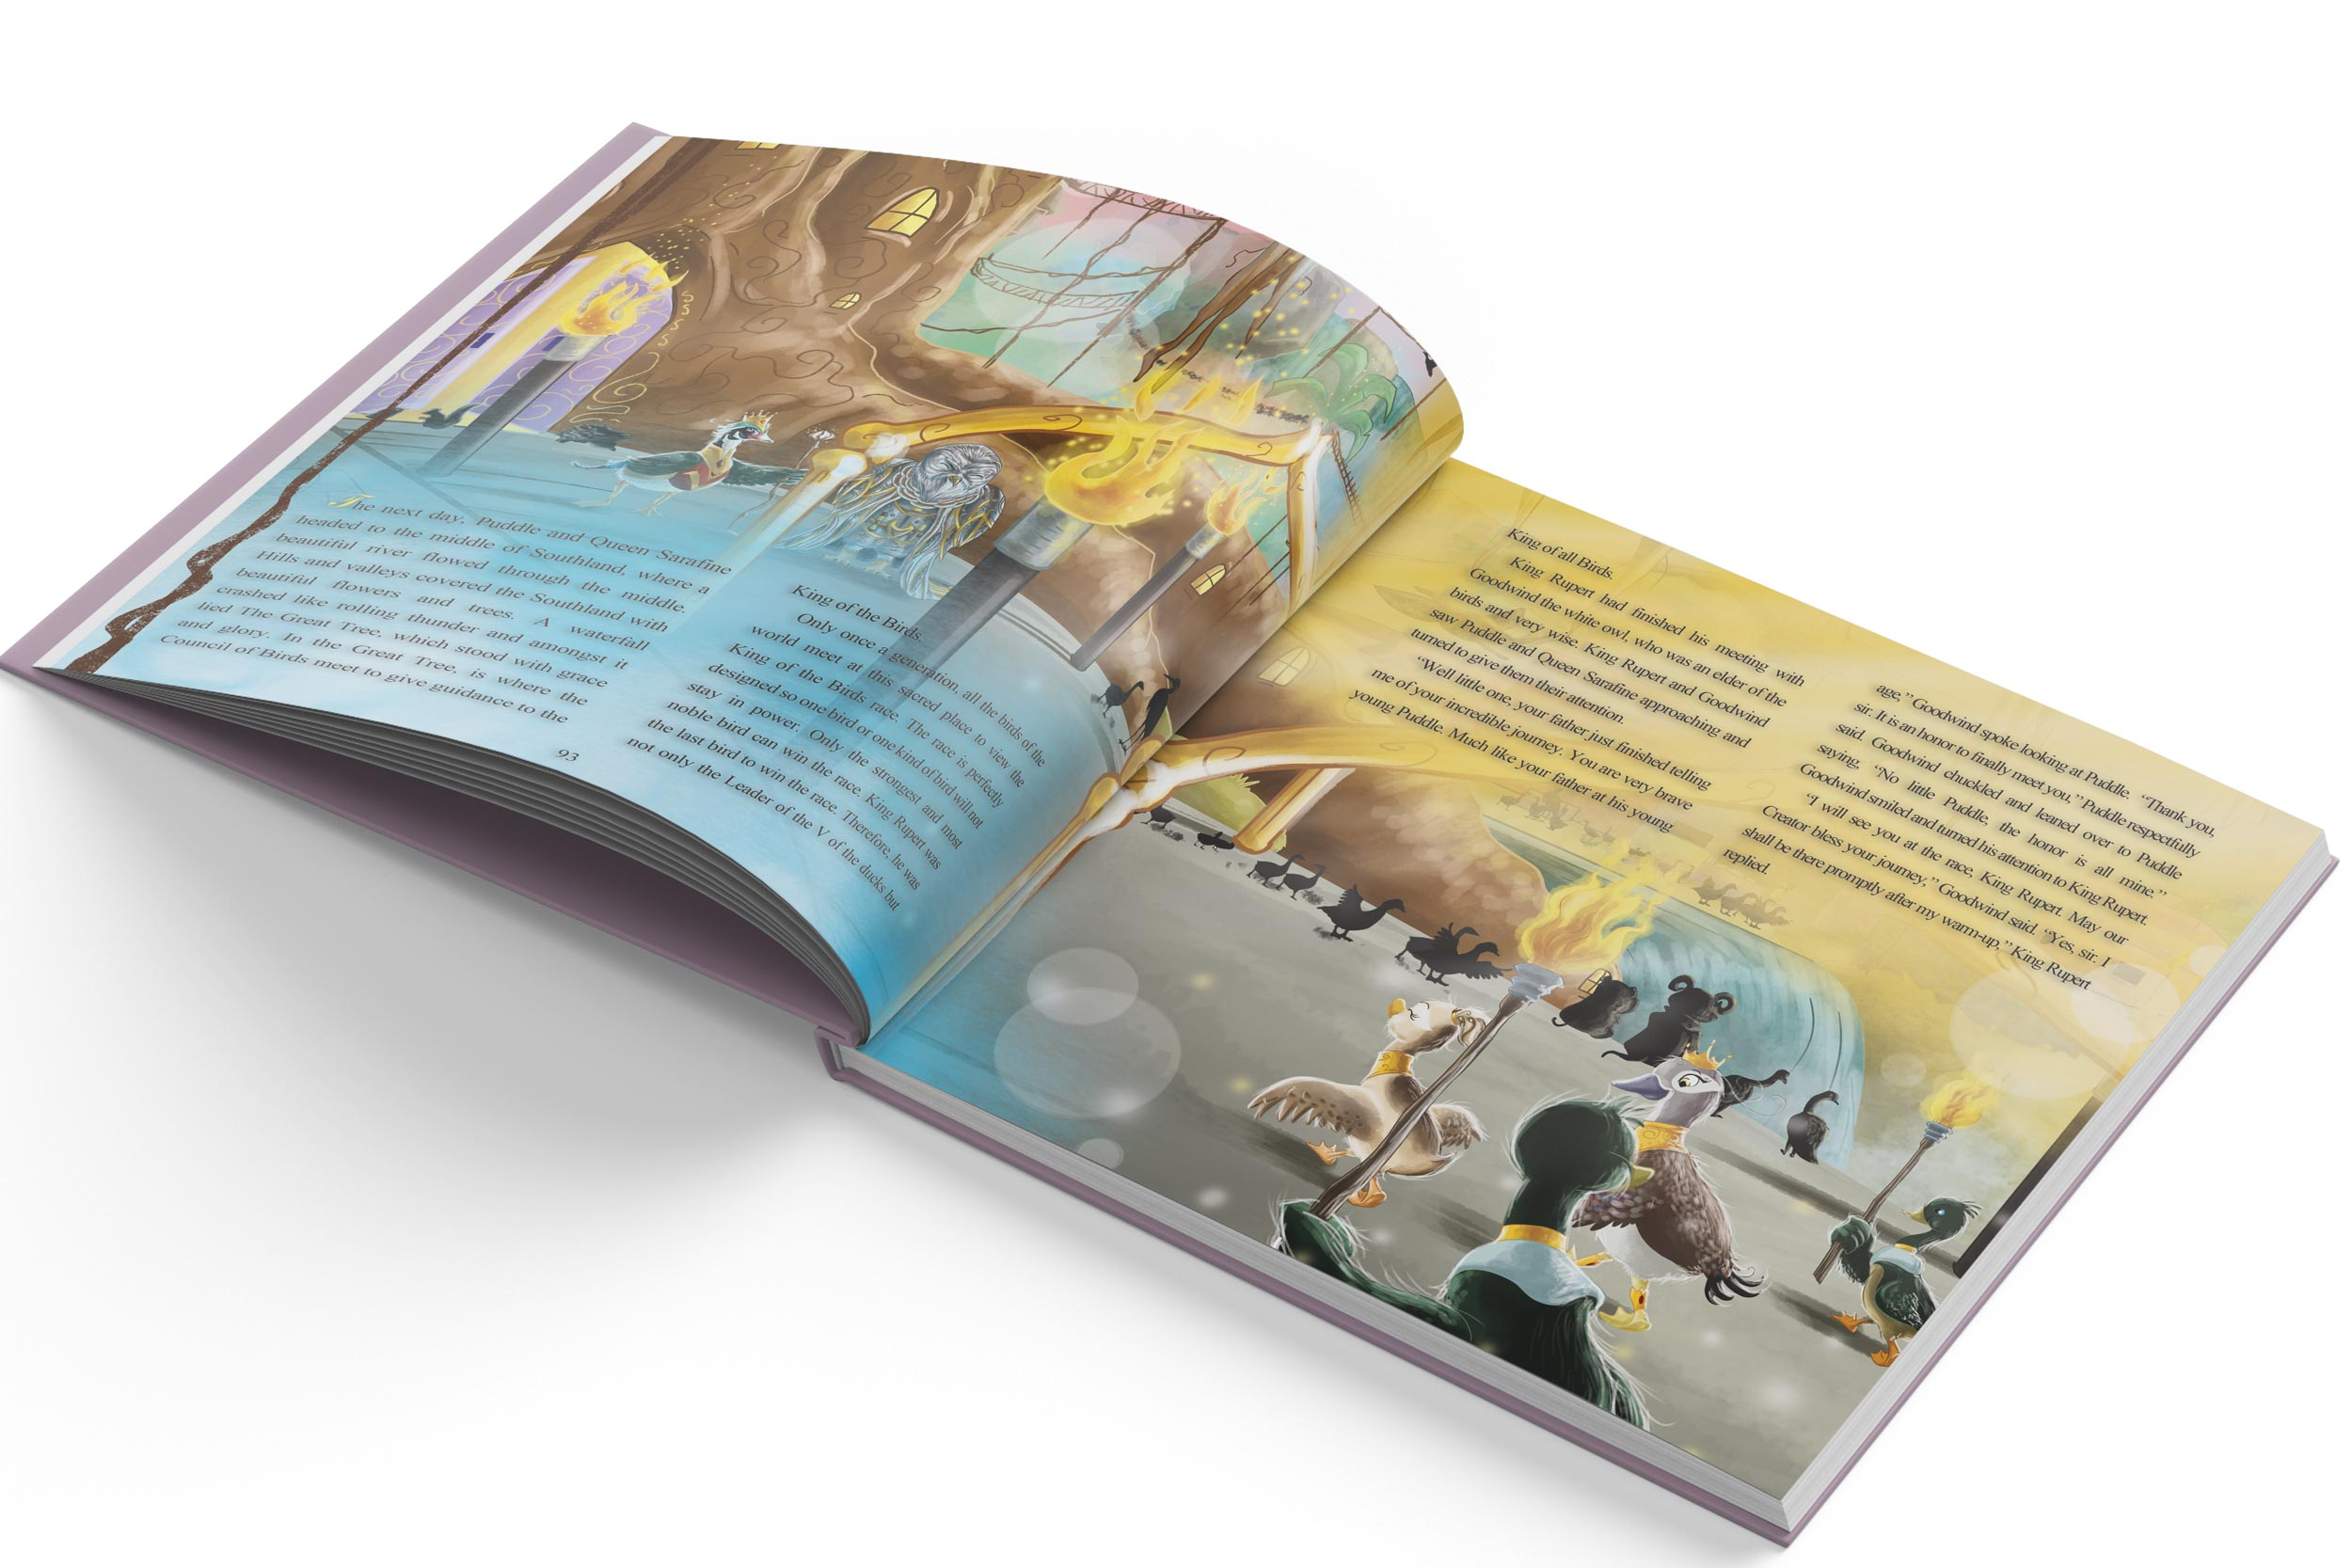 journey-of-puddle-christian-illustrated-children-books-book-3-look-inside-page-2.jpg